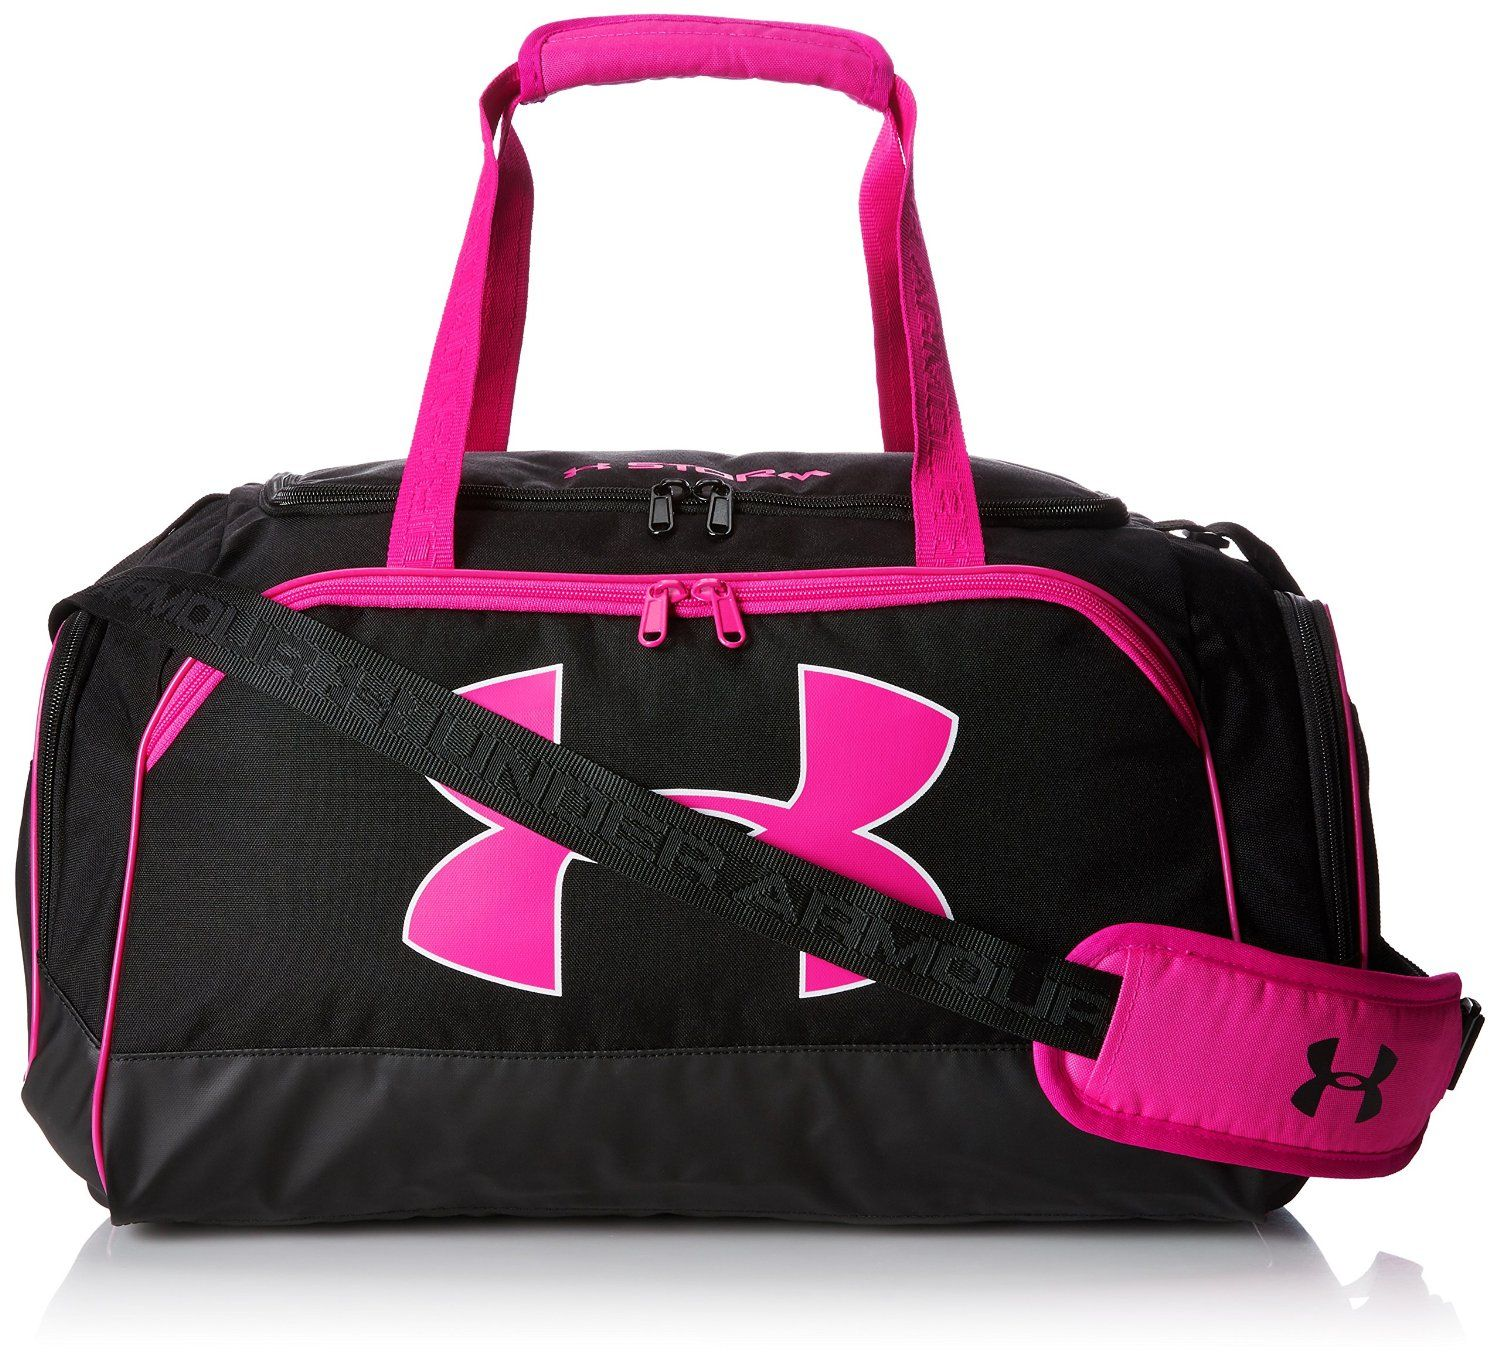 Best Gym Bags For Men And Women With Durability